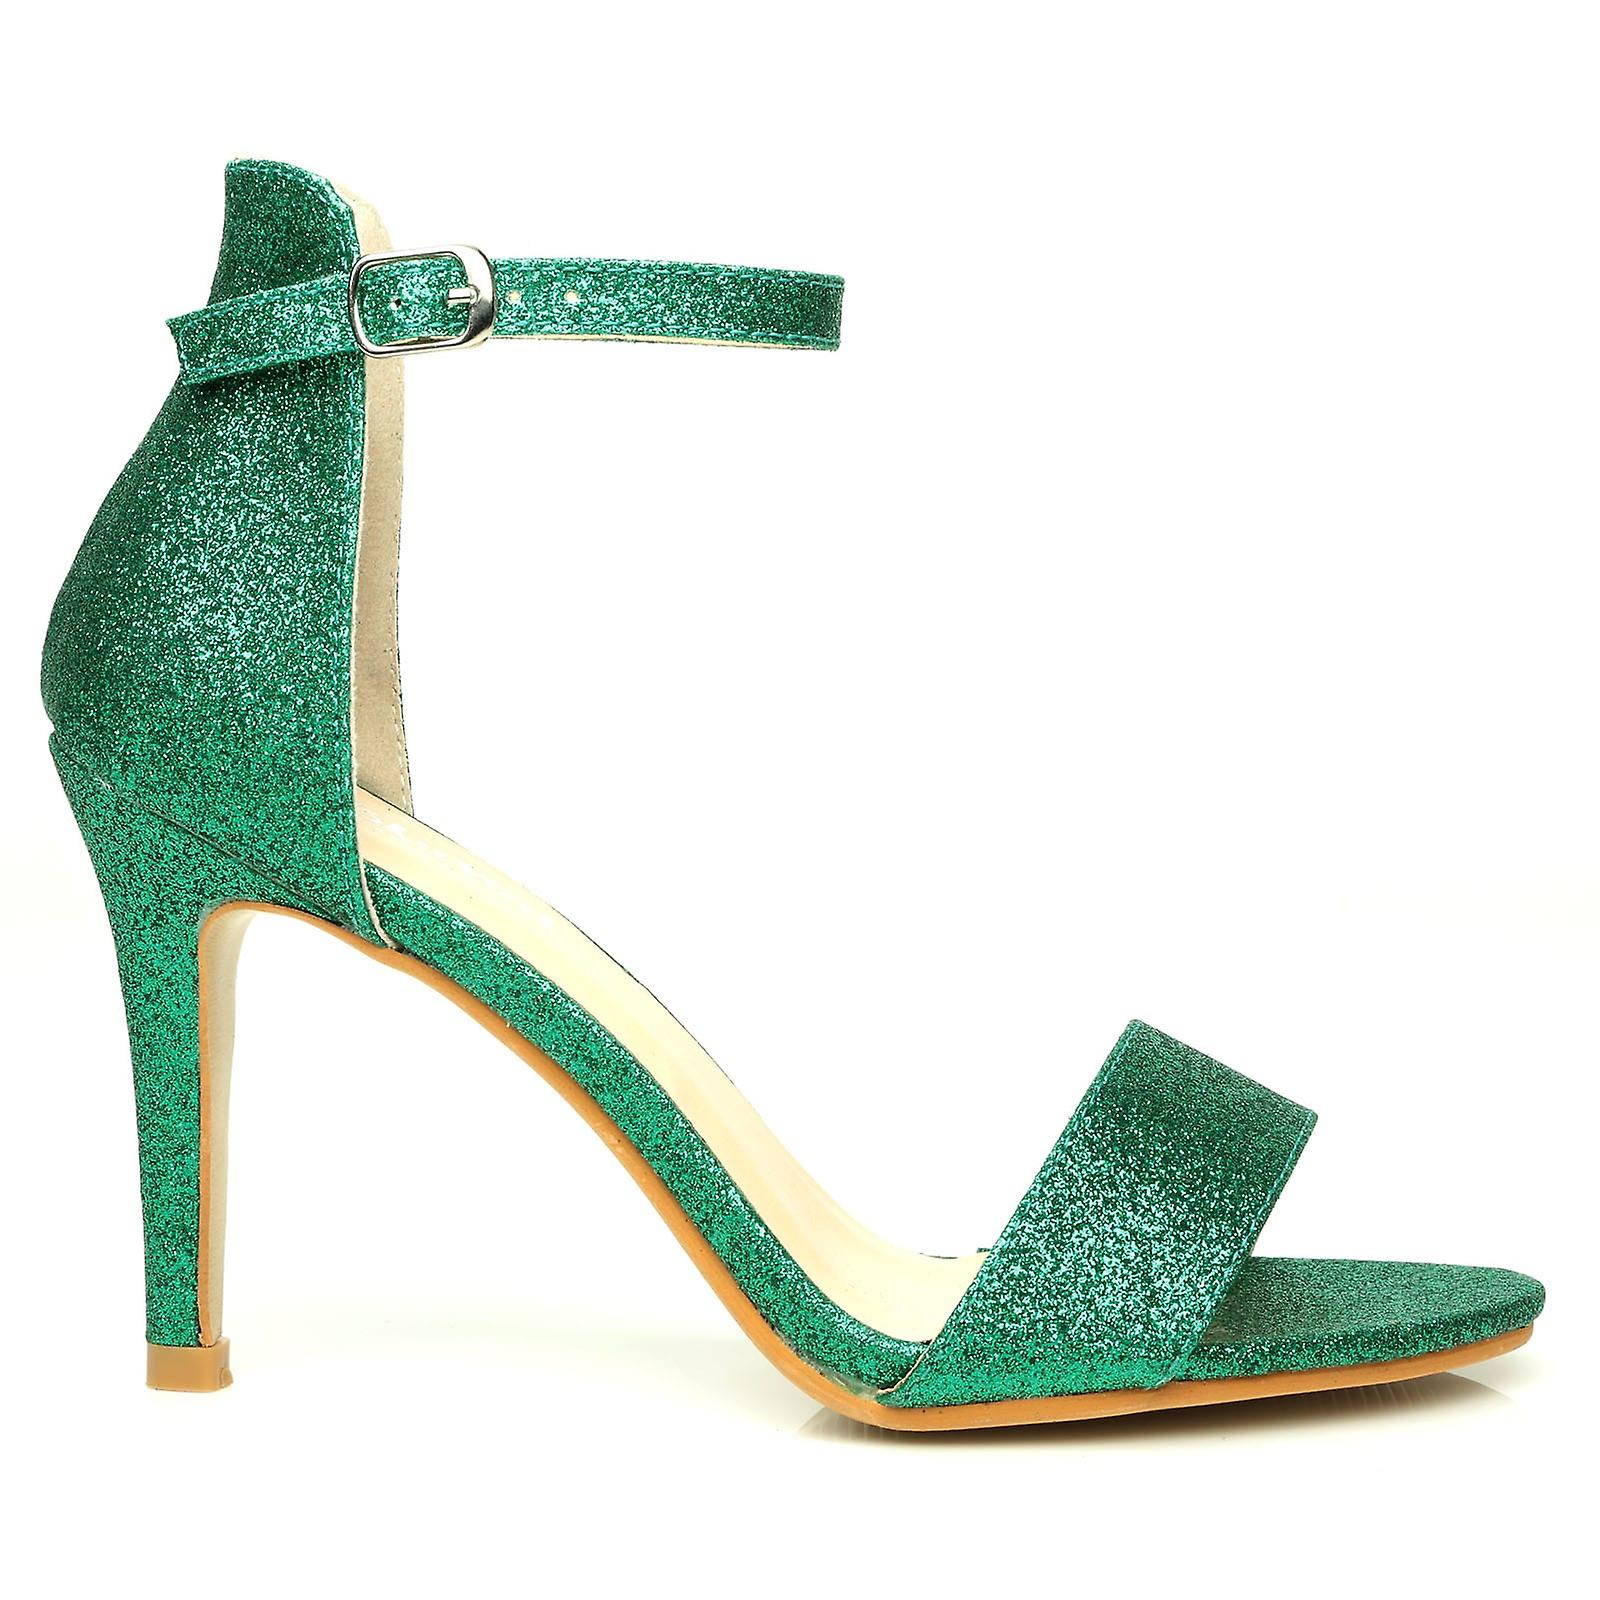 PAM Green Glitter Ankle Strap Barely There High Heel Sandals